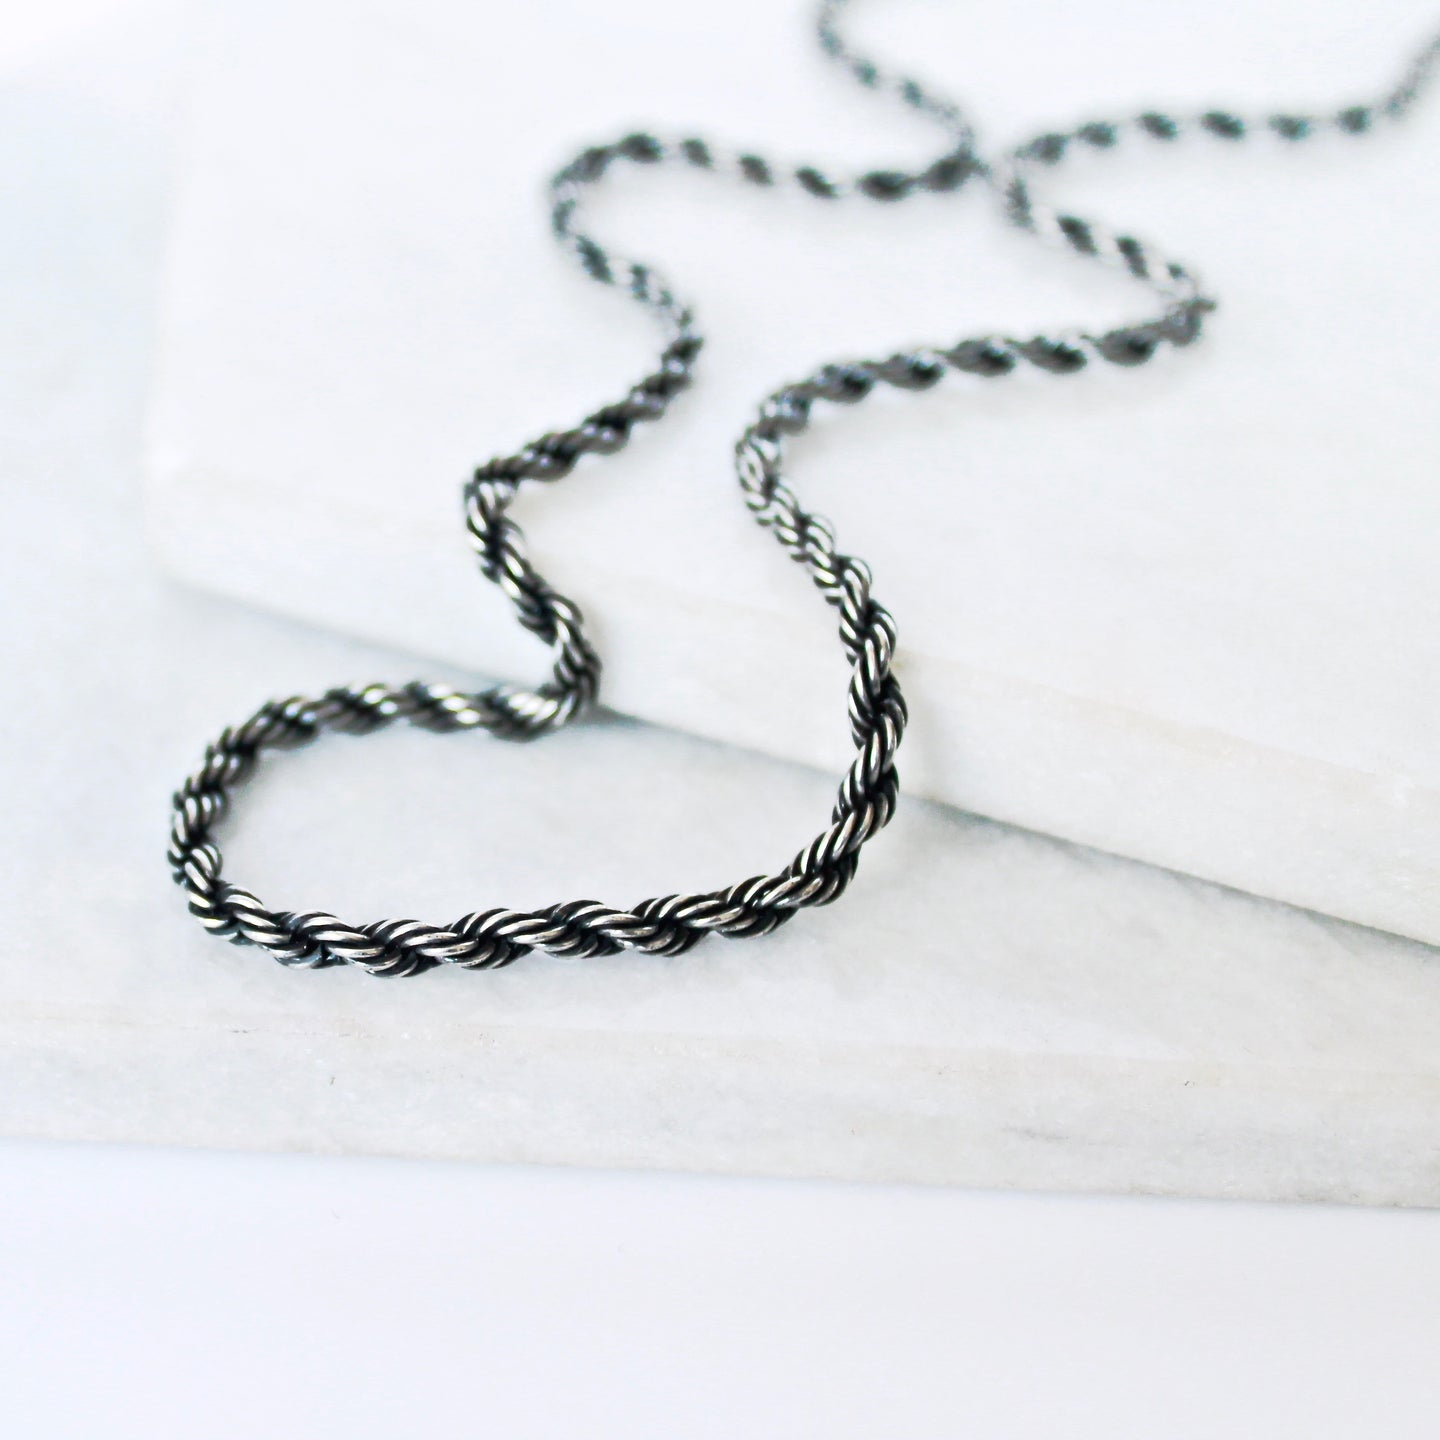 Antique Rope Chain